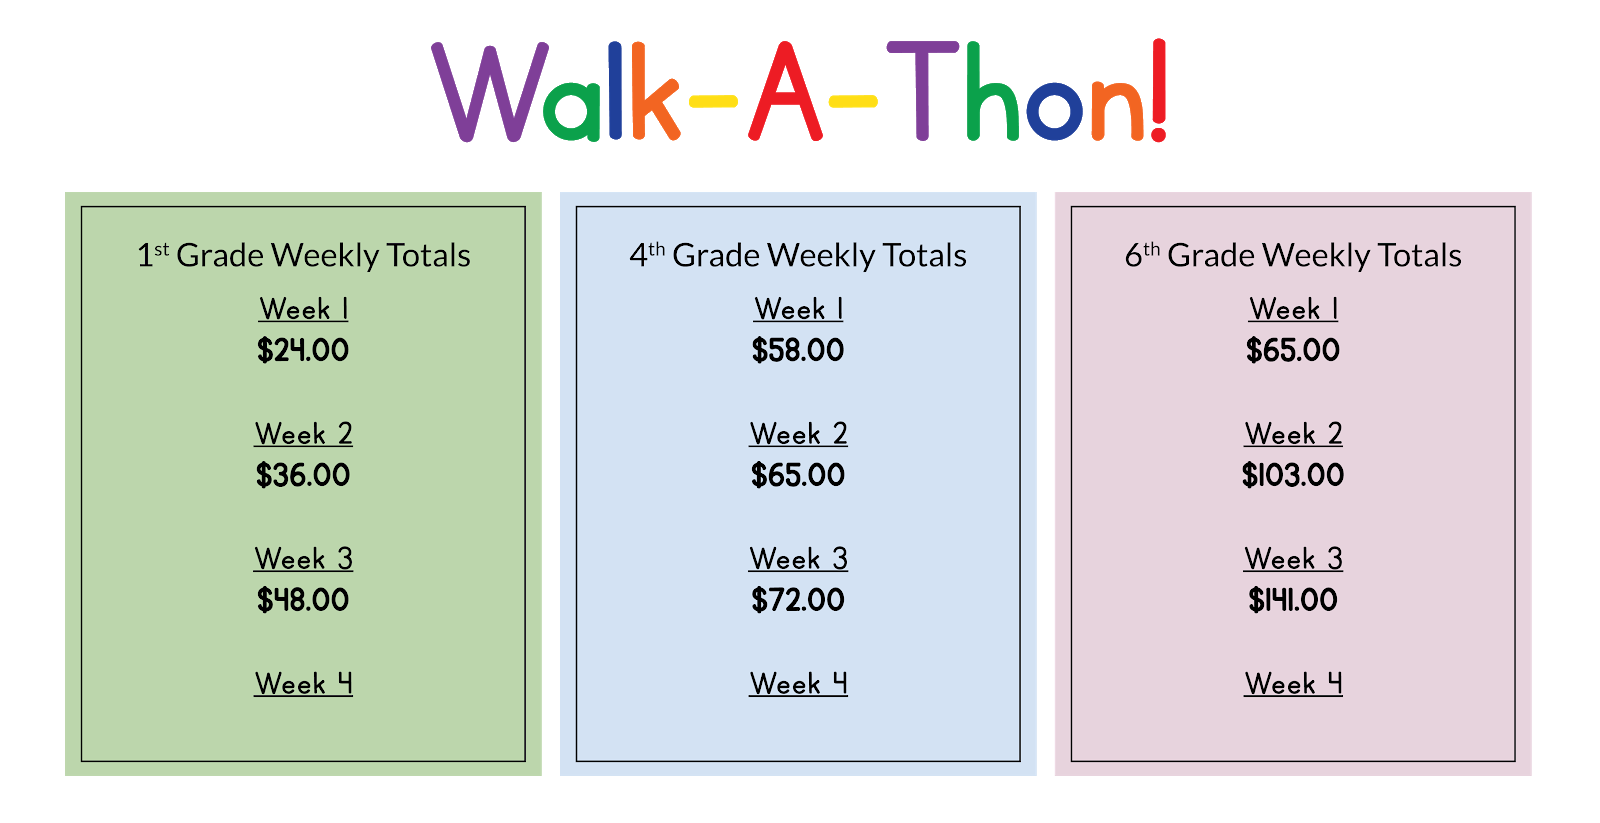 Walk-a-thon weekly totals: First Grade, week 1: $24. Week 2: $36. Week 3: $48. Fourth Grade, week 1: $58. Week 2: $65. Week 3: $72. Sixth Grade, week 1: $65. Week 2: $103. Week 3: $141. Week 4 totals aren't available yet.